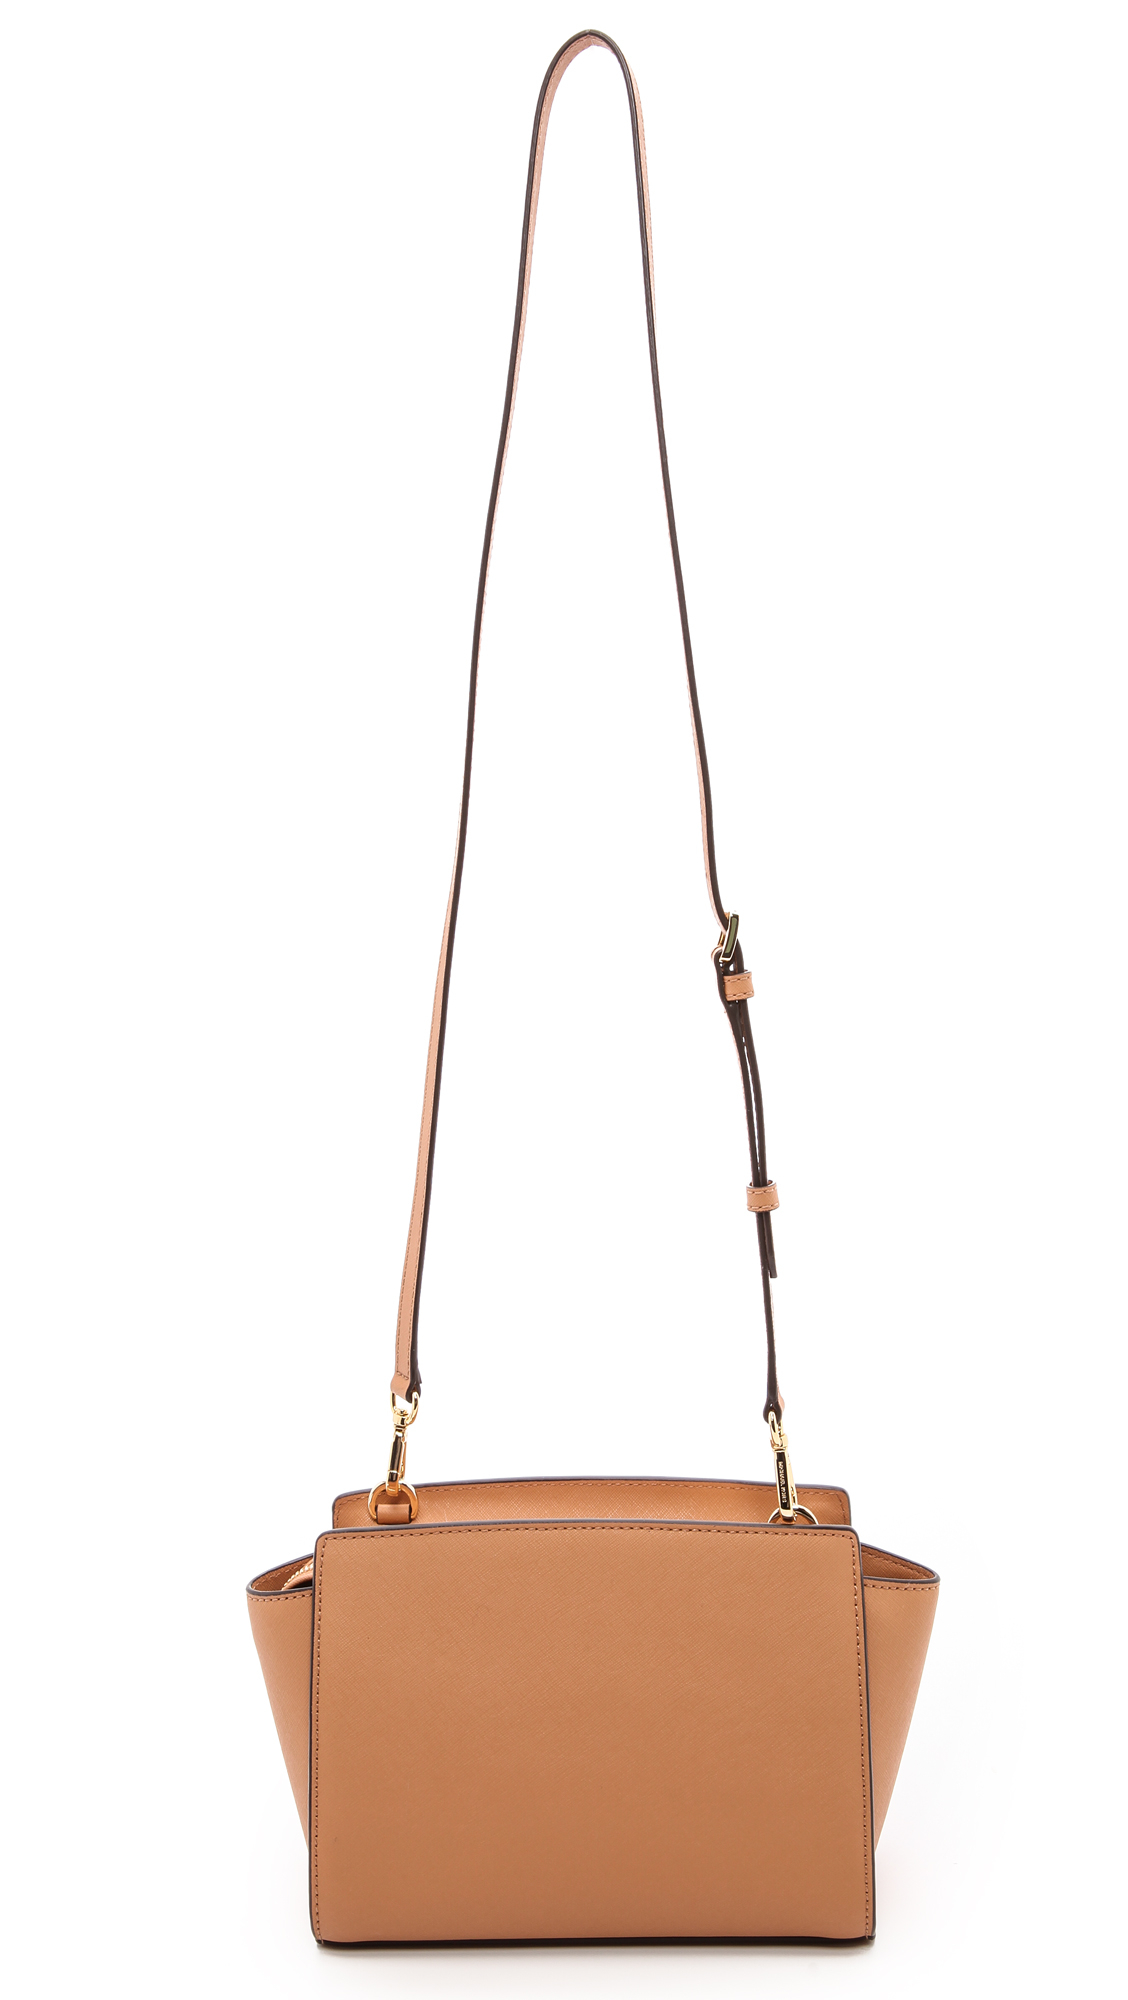 65377afead47 Previously sold at Shopbop · Womens Michael By Michael Kors Selma ...